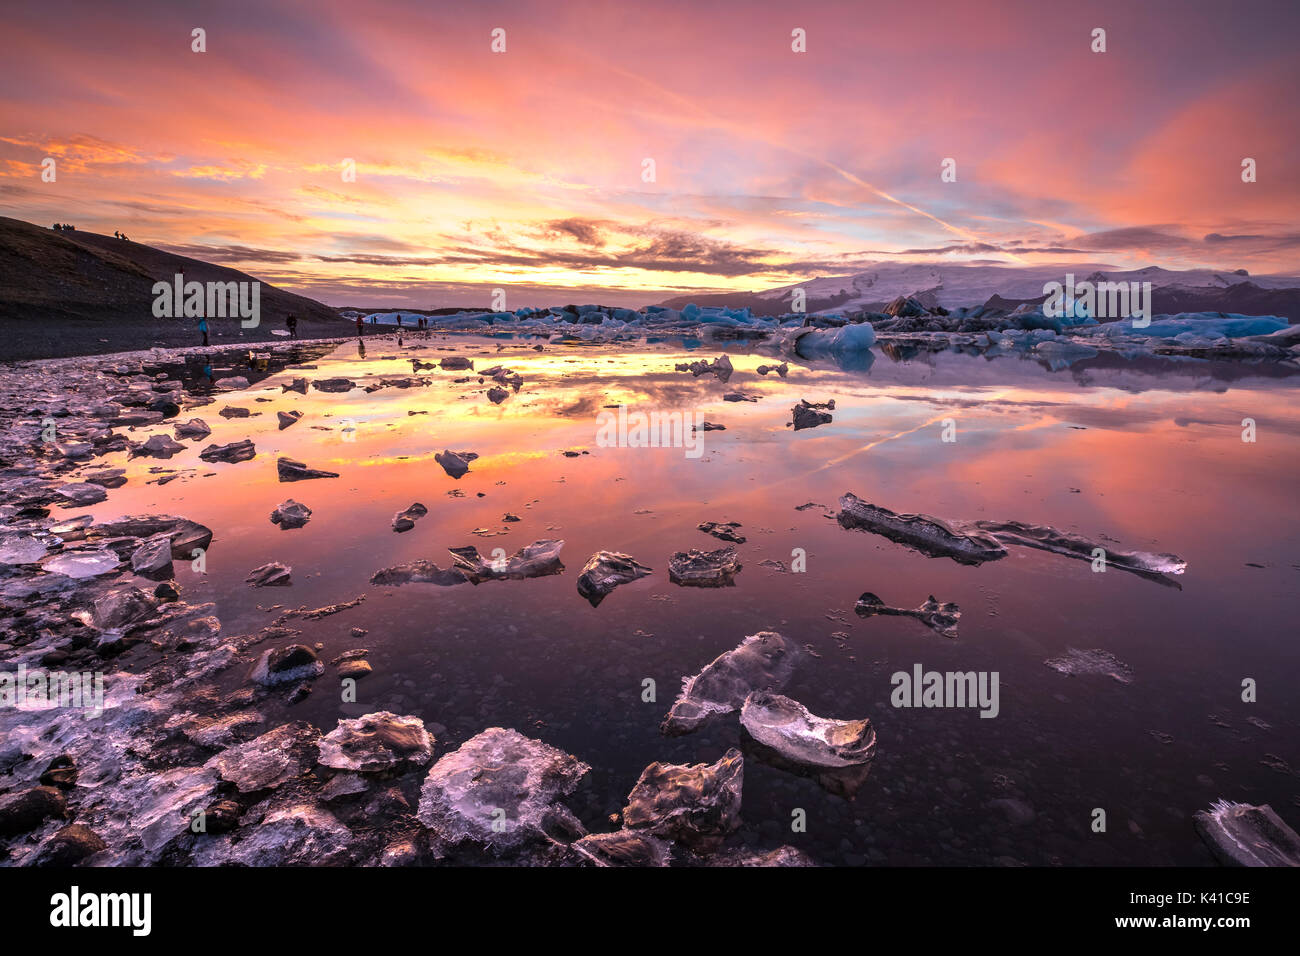 Sunset at Jökulsárlón,Iceland - Stock Image